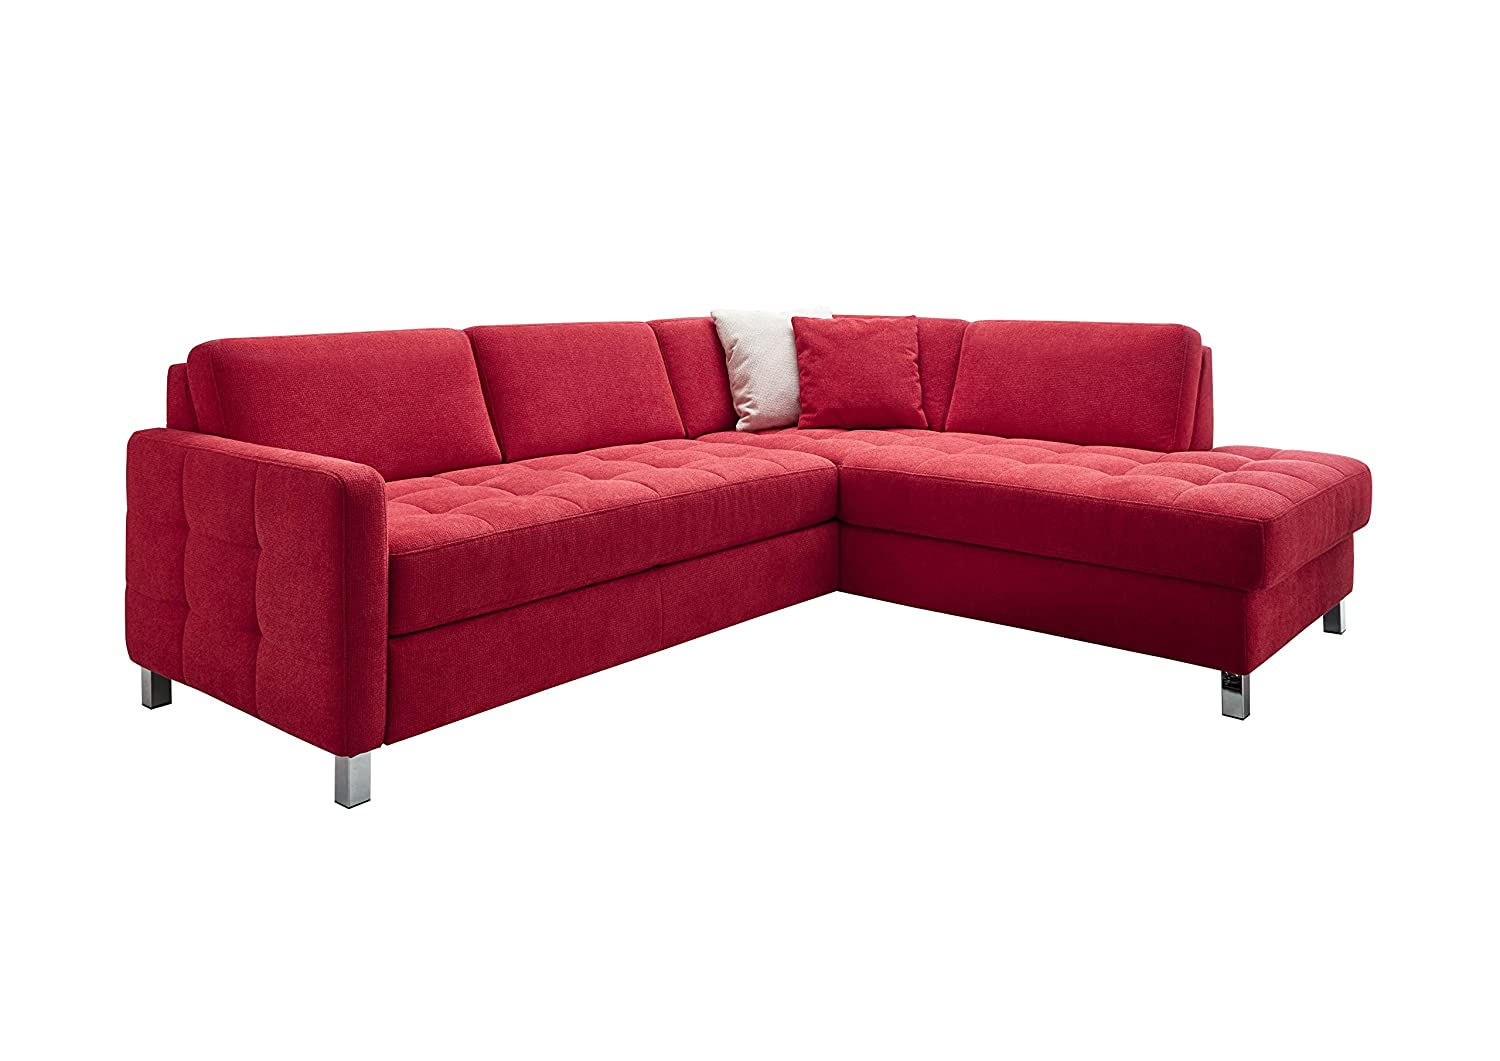 cavadore 5229 polsterecke schlafsofa mit bettkasten schaumstoff rot 233 x 196 x 80 cm g nstig. Black Bedroom Furniture Sets. Home Design Ideas